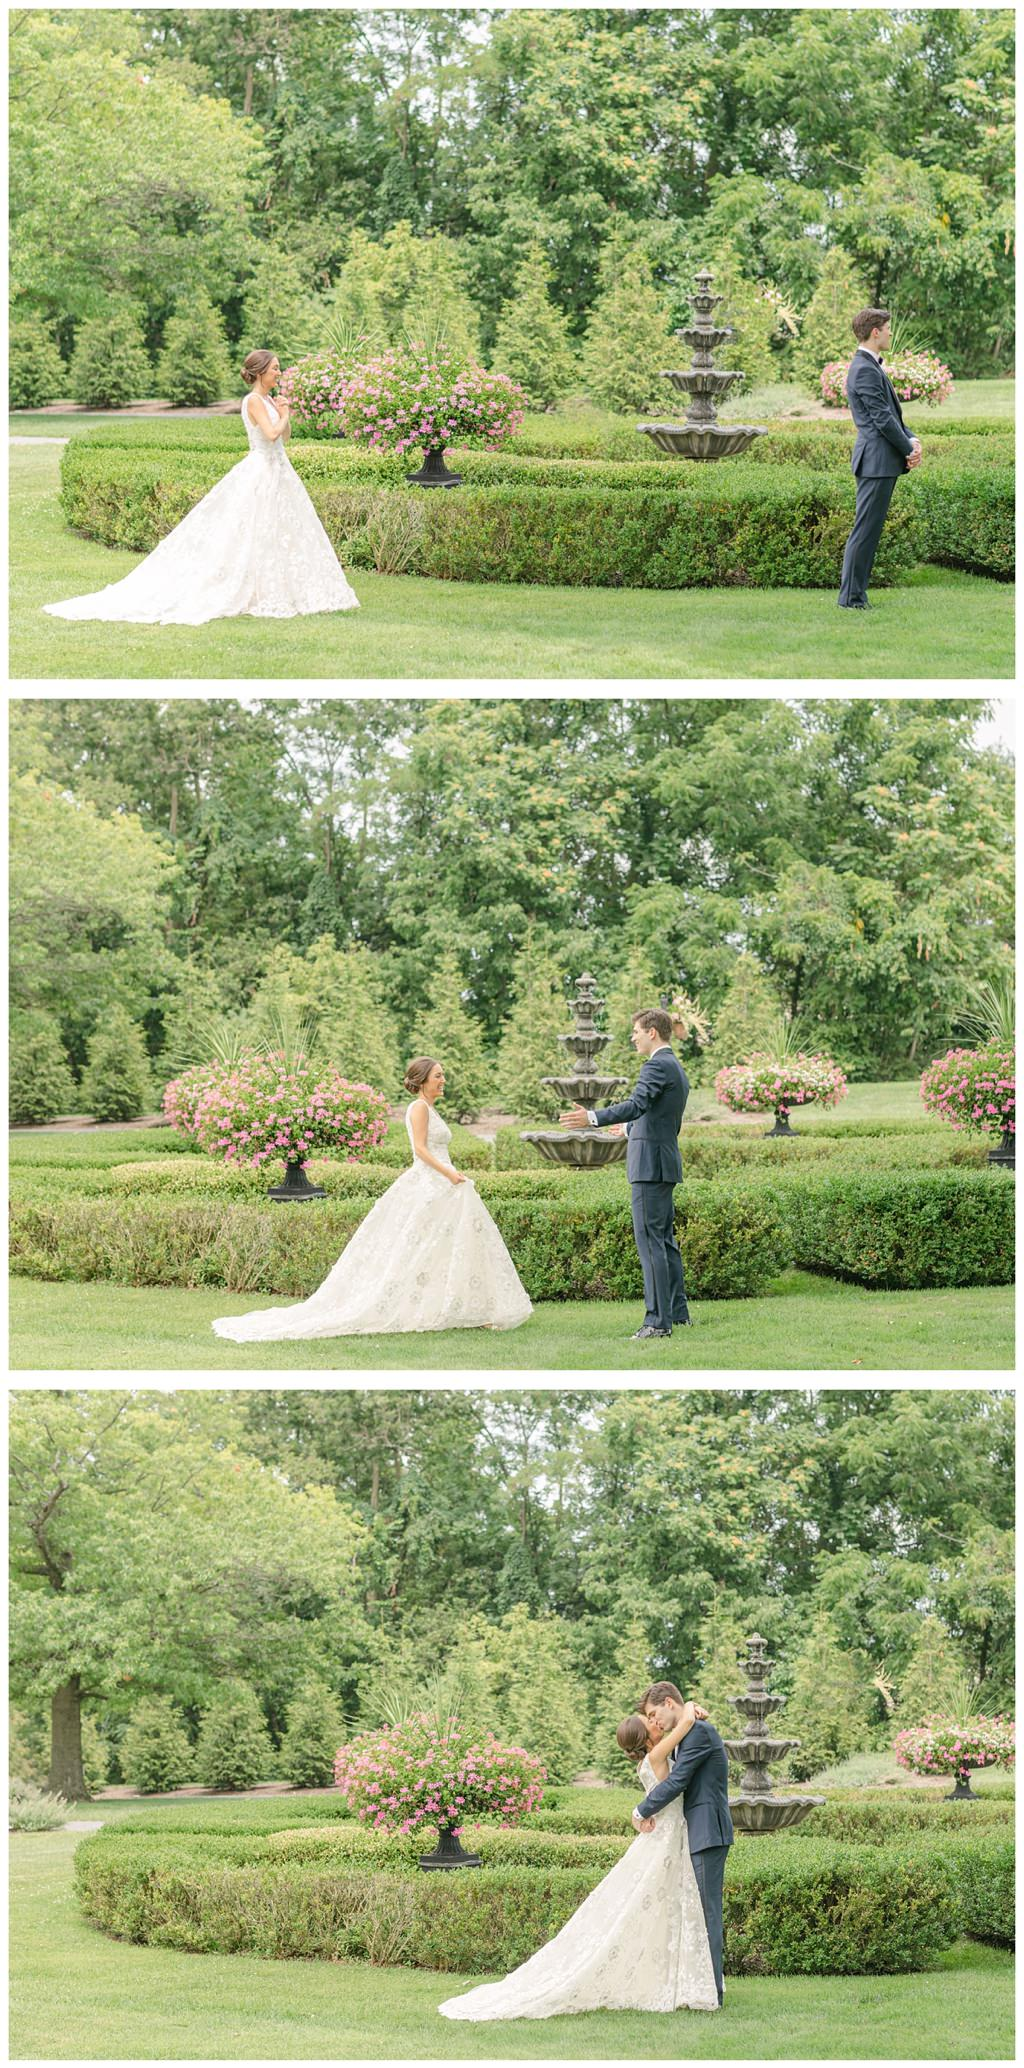 A bride and groom doing a first look befroe their wedding at Moonstone Manor